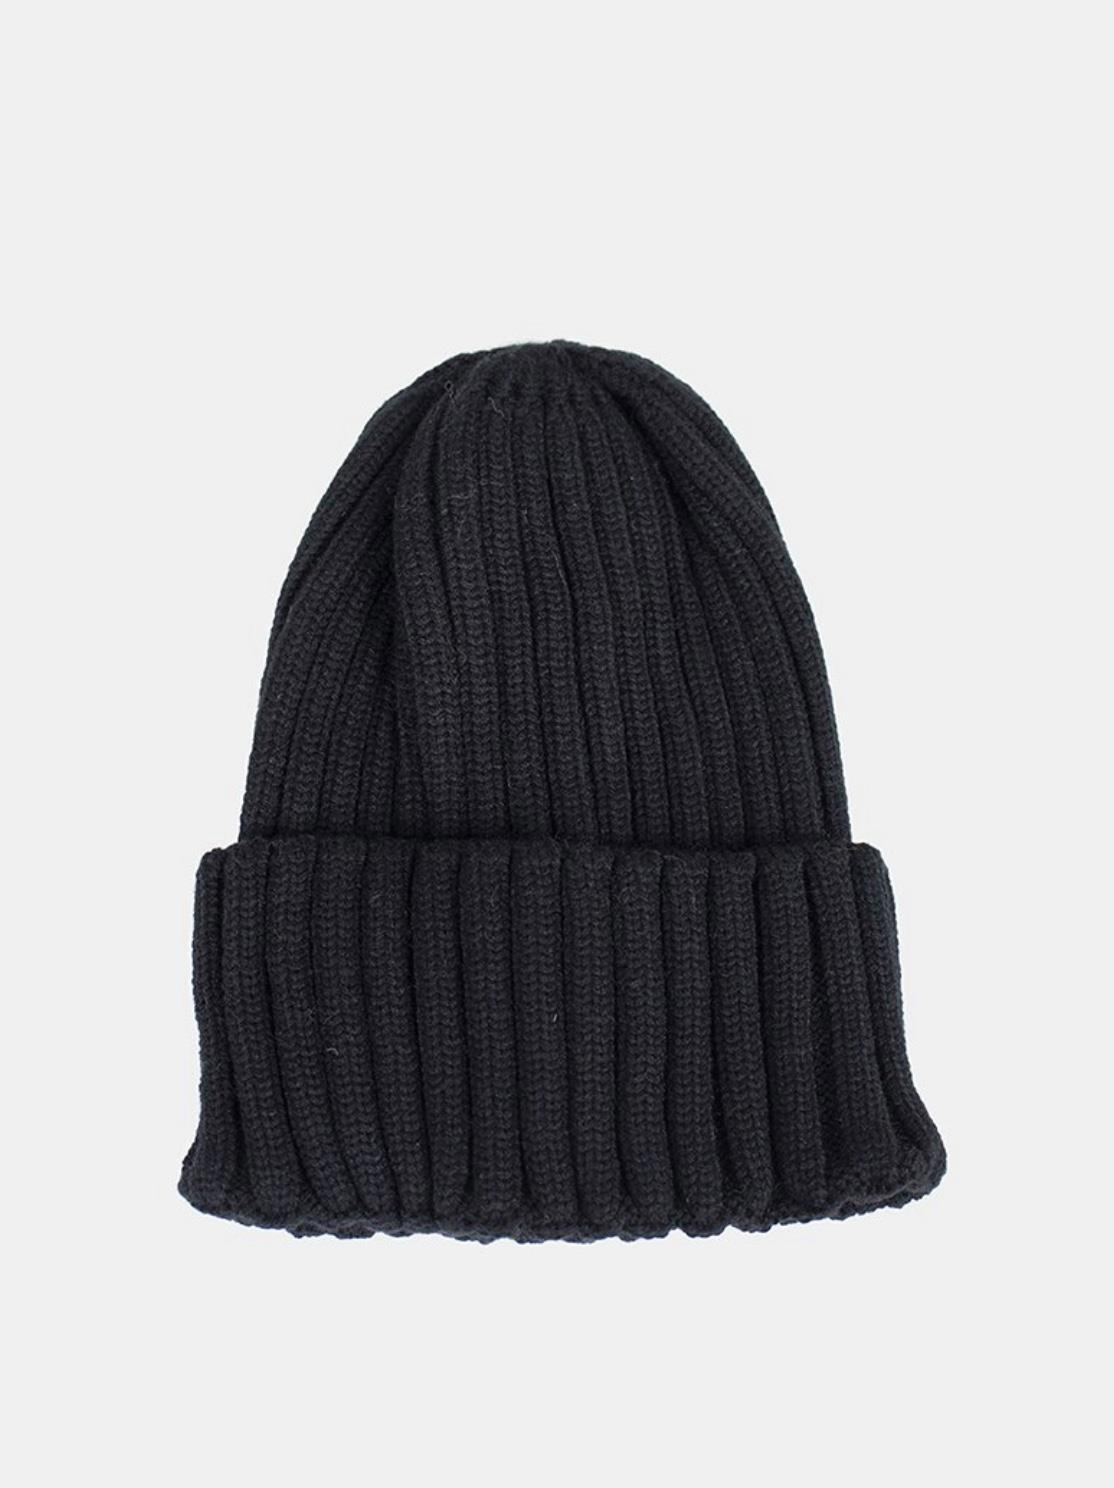 Rae Plain (Hat)